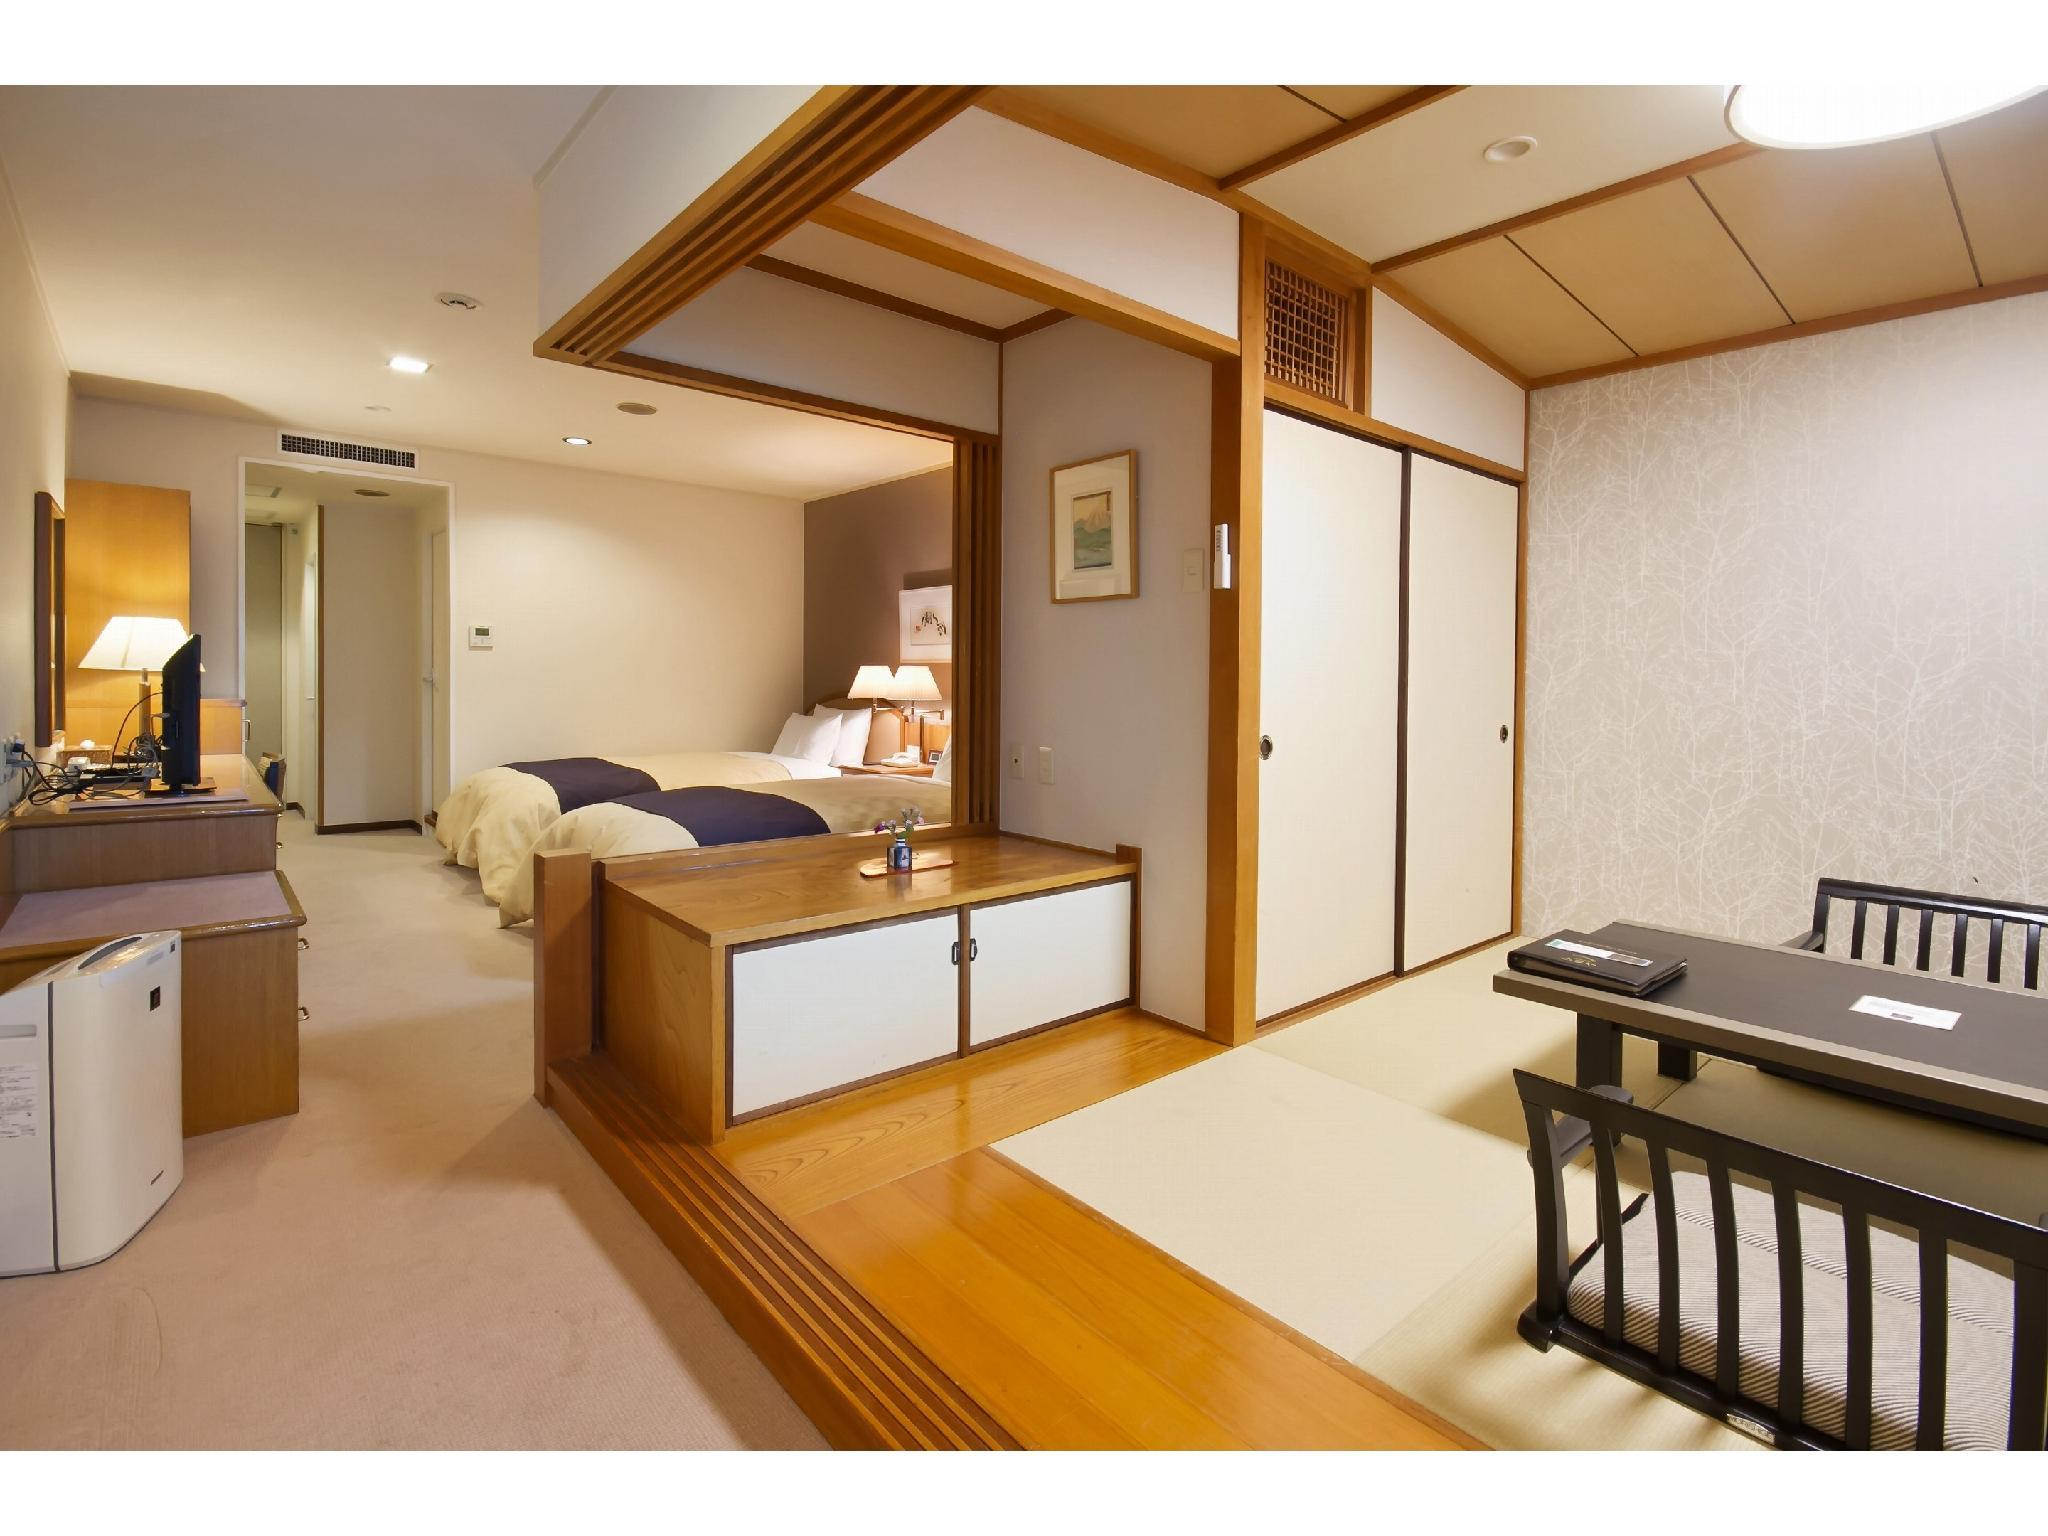 南馆 和洋式房(2张床) (Japanese/Western-style Room (2 Beds, South Wing))